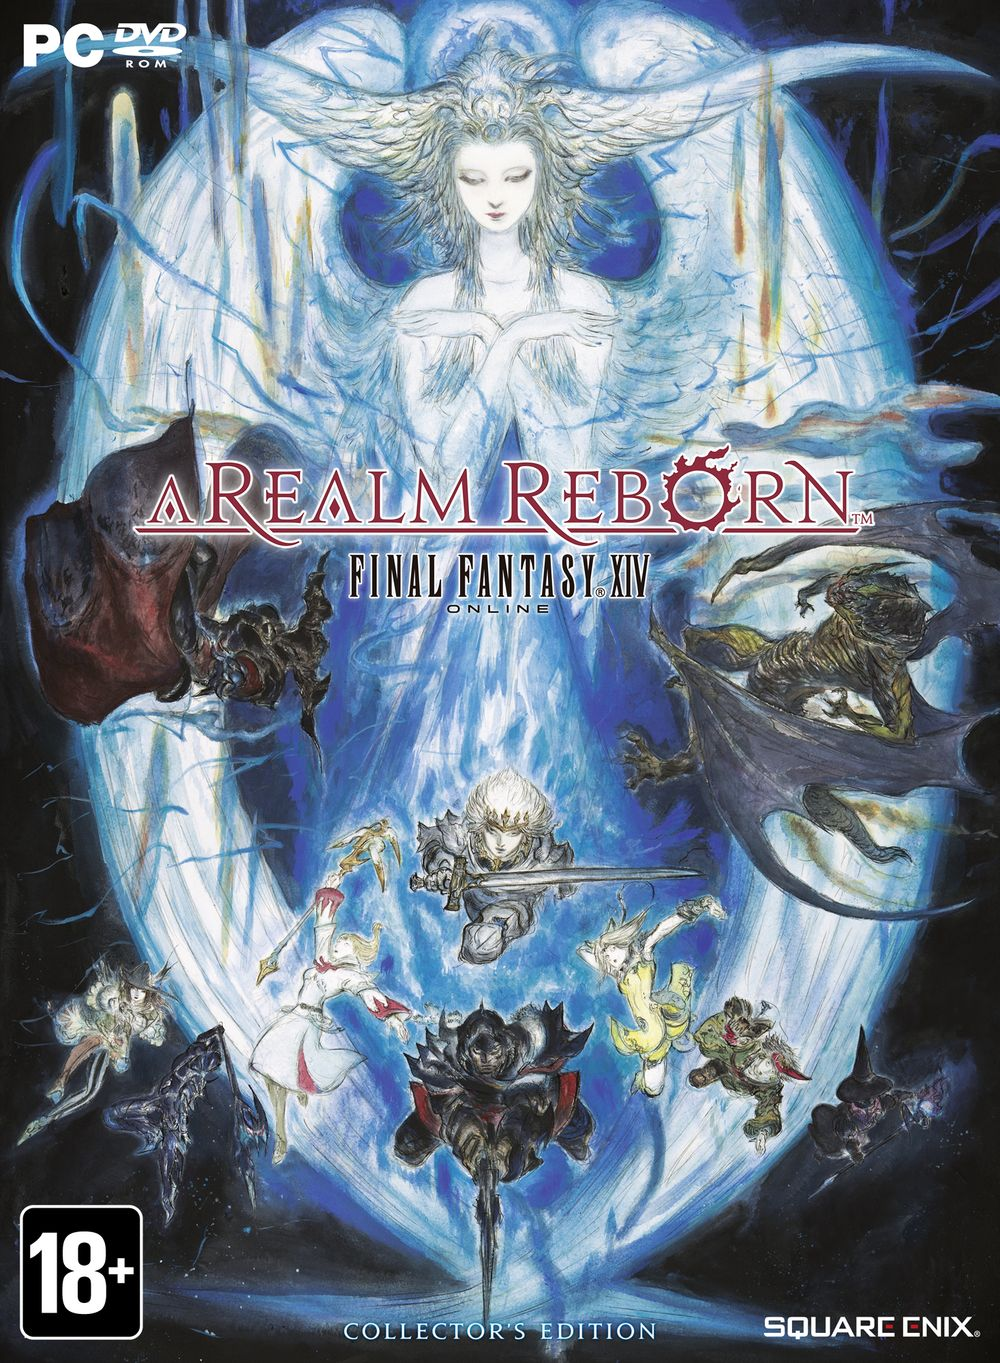 Final Fantasy XIV: A Realm Reborn. Collector's Edition, Square Enix